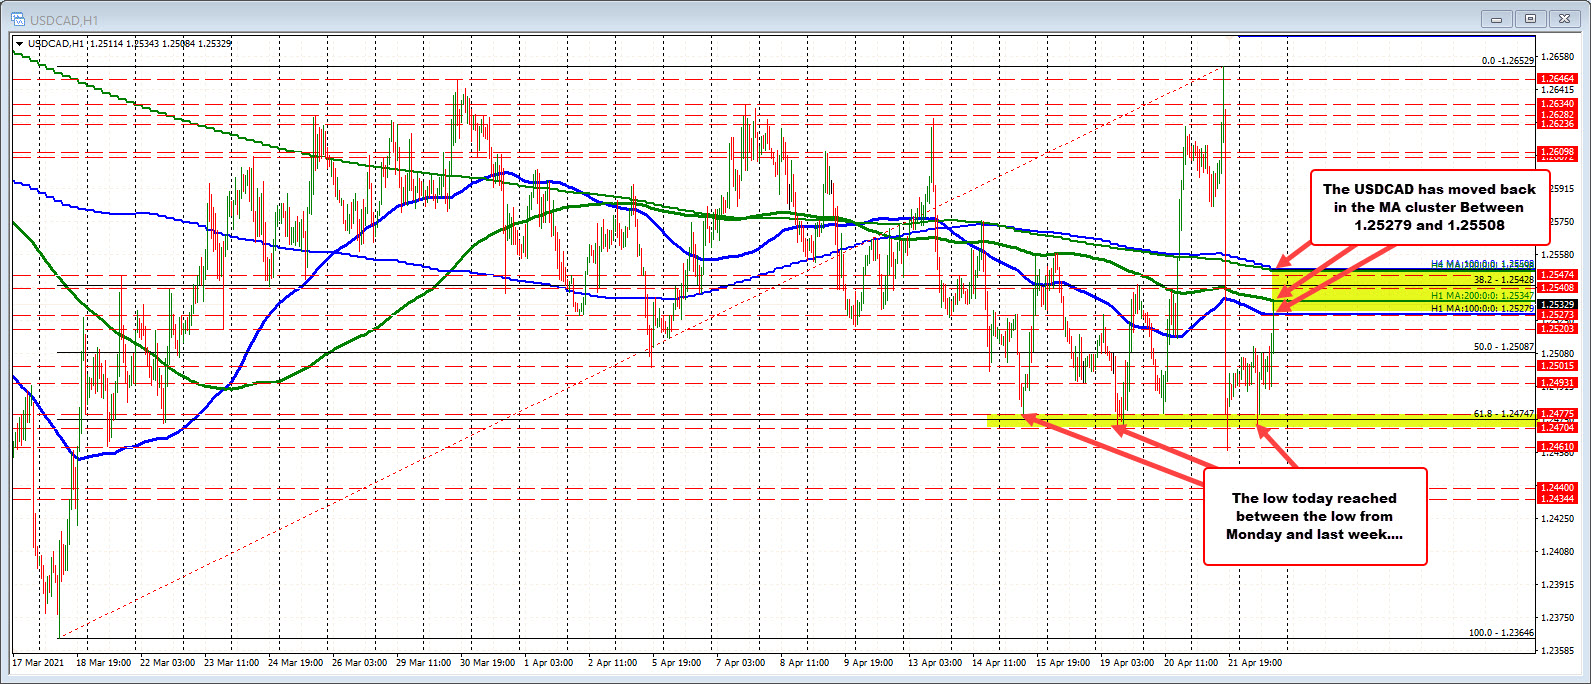 100/200 hour MA, 100/200 bar MA on the 4-hour chart in play